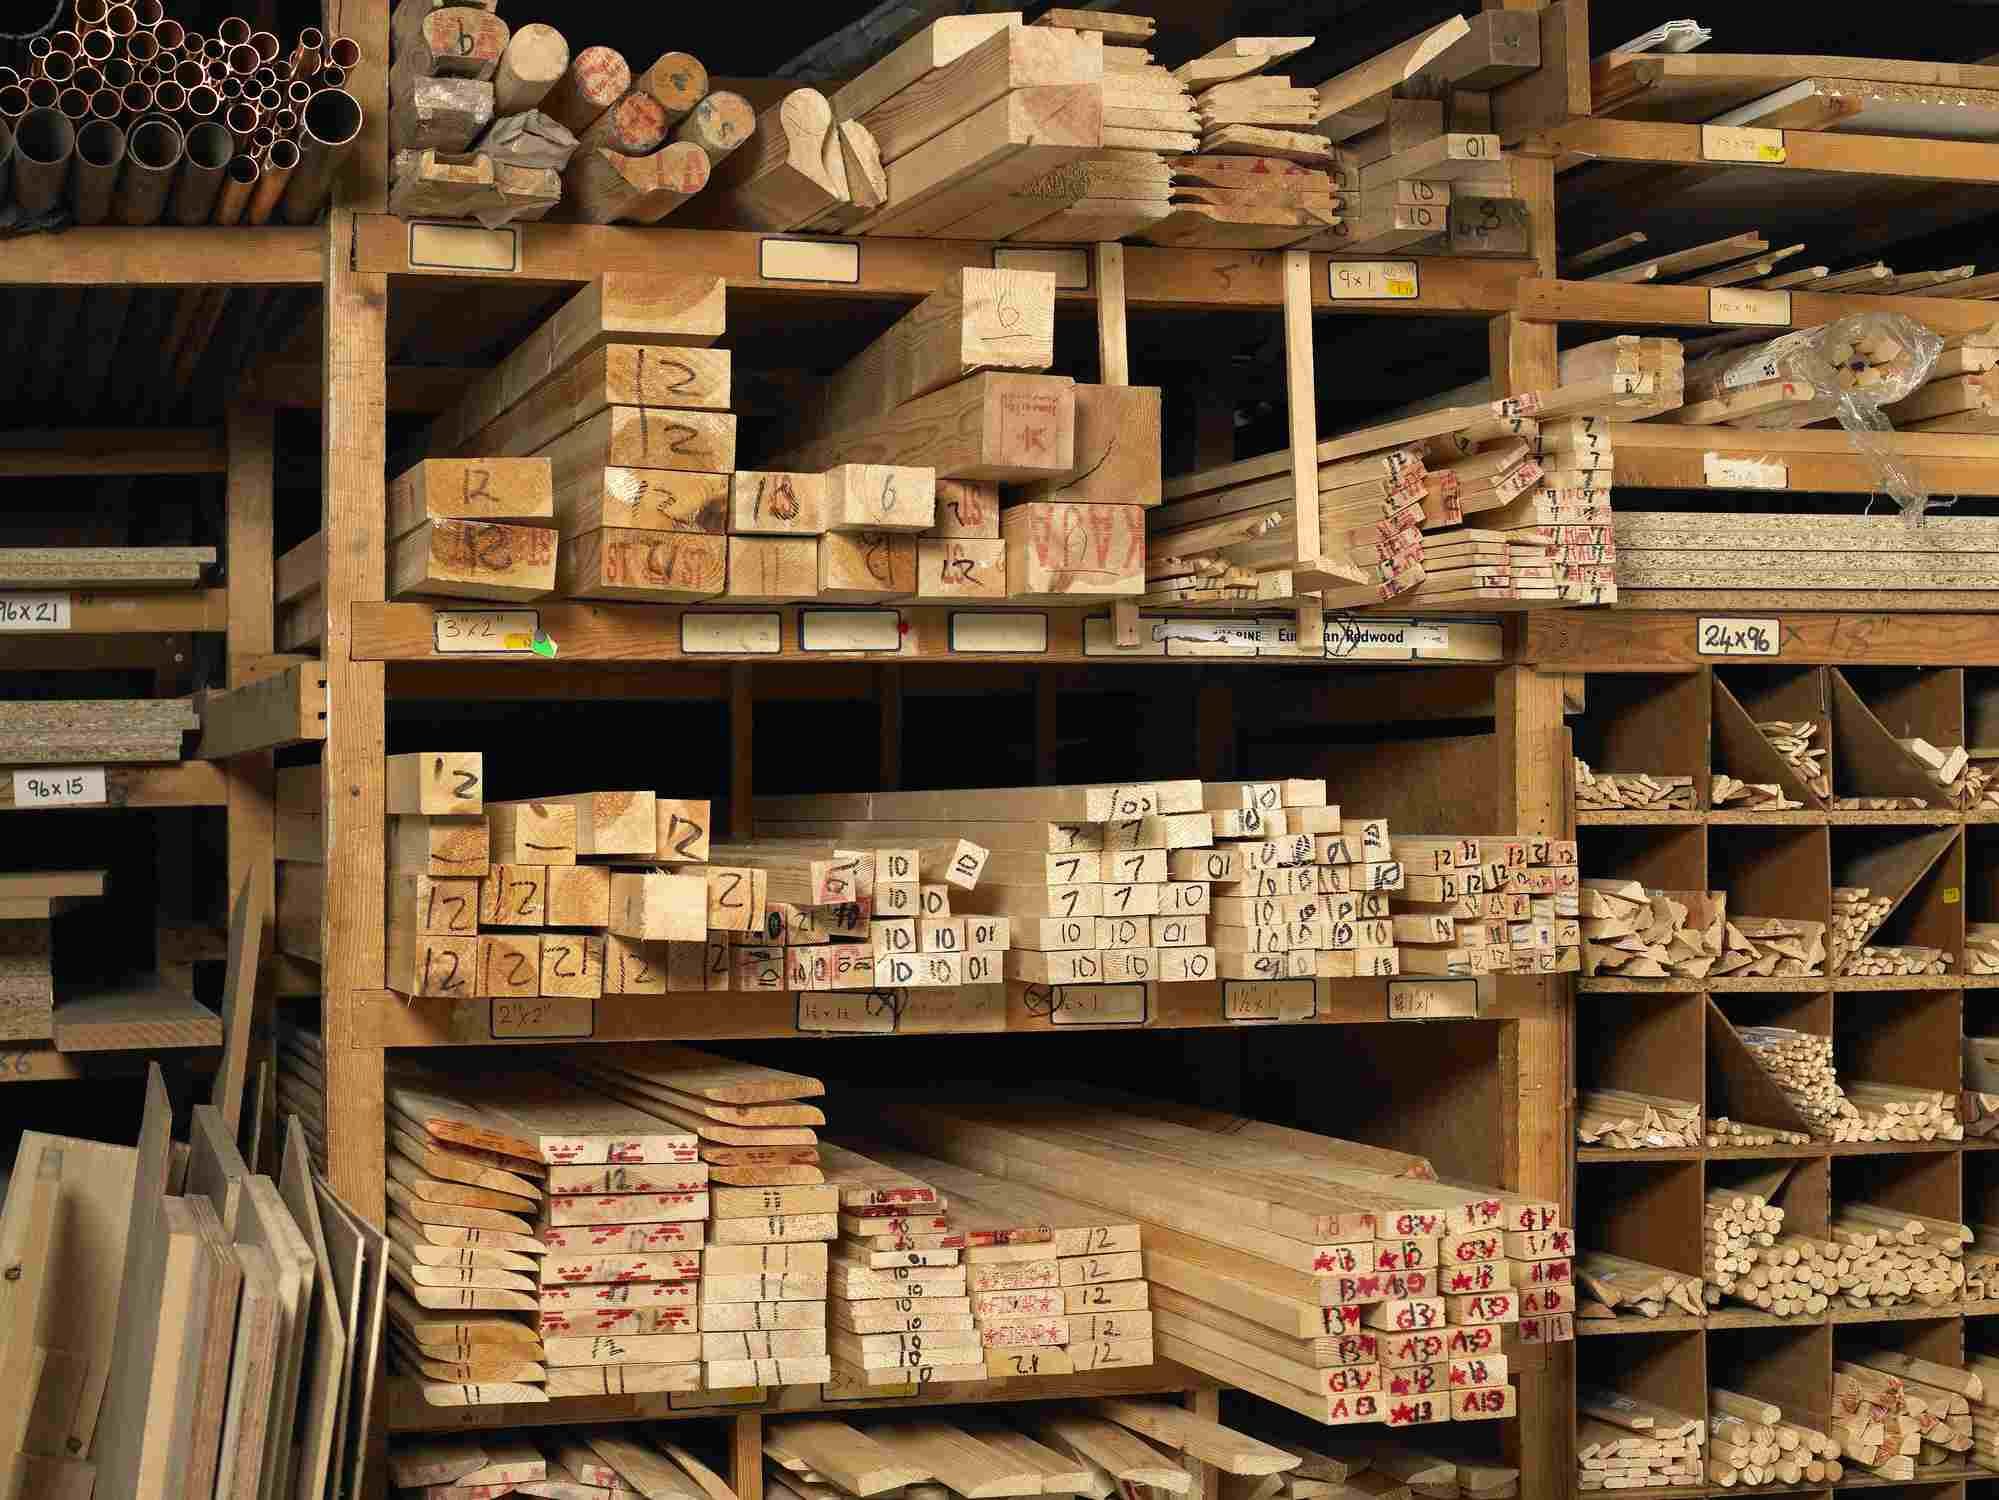 As A Contractor You Need To Be Able Recognize Defects In Lumber Yard Should Cull Damaged Wood Before Shipping It Your Building Site